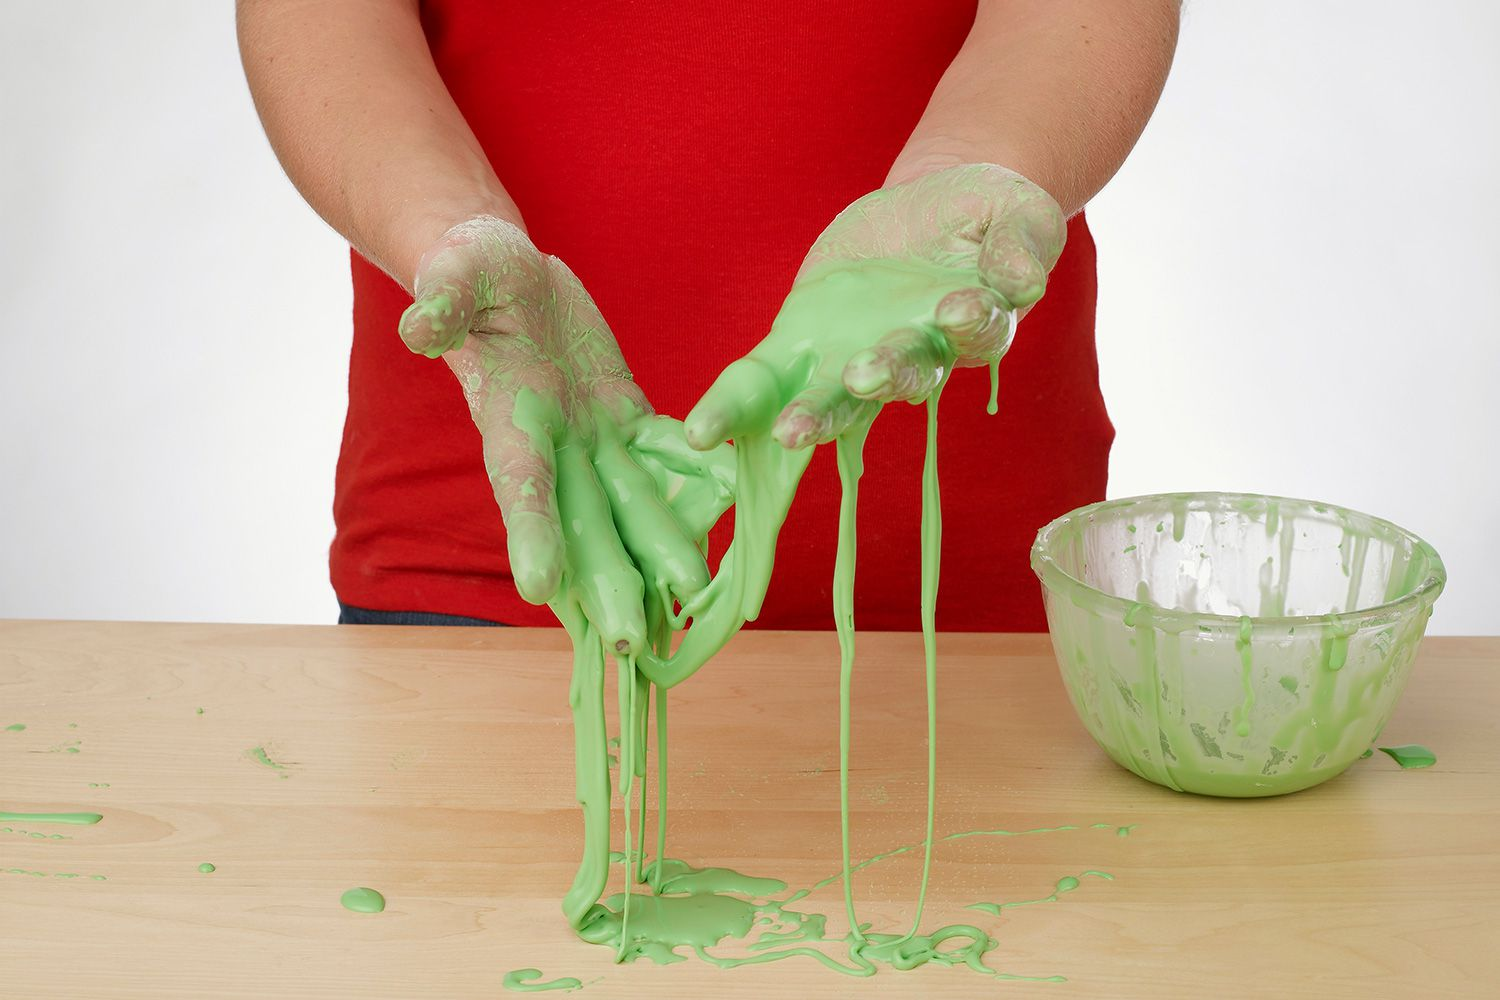 Alter the consistency of slime by changing the ratio of ingredients